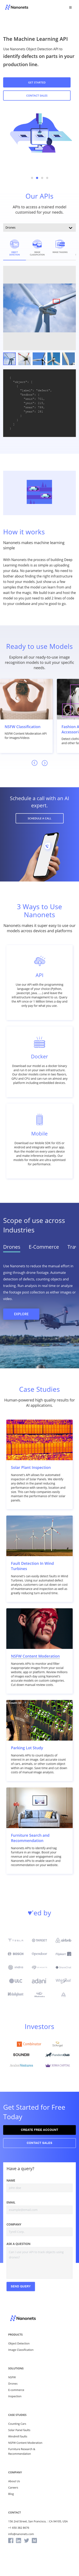 Example of Design for Computers & Electronics, Programming, Mobile Landing Page by nanonets.com   Mobile Landing Page Design